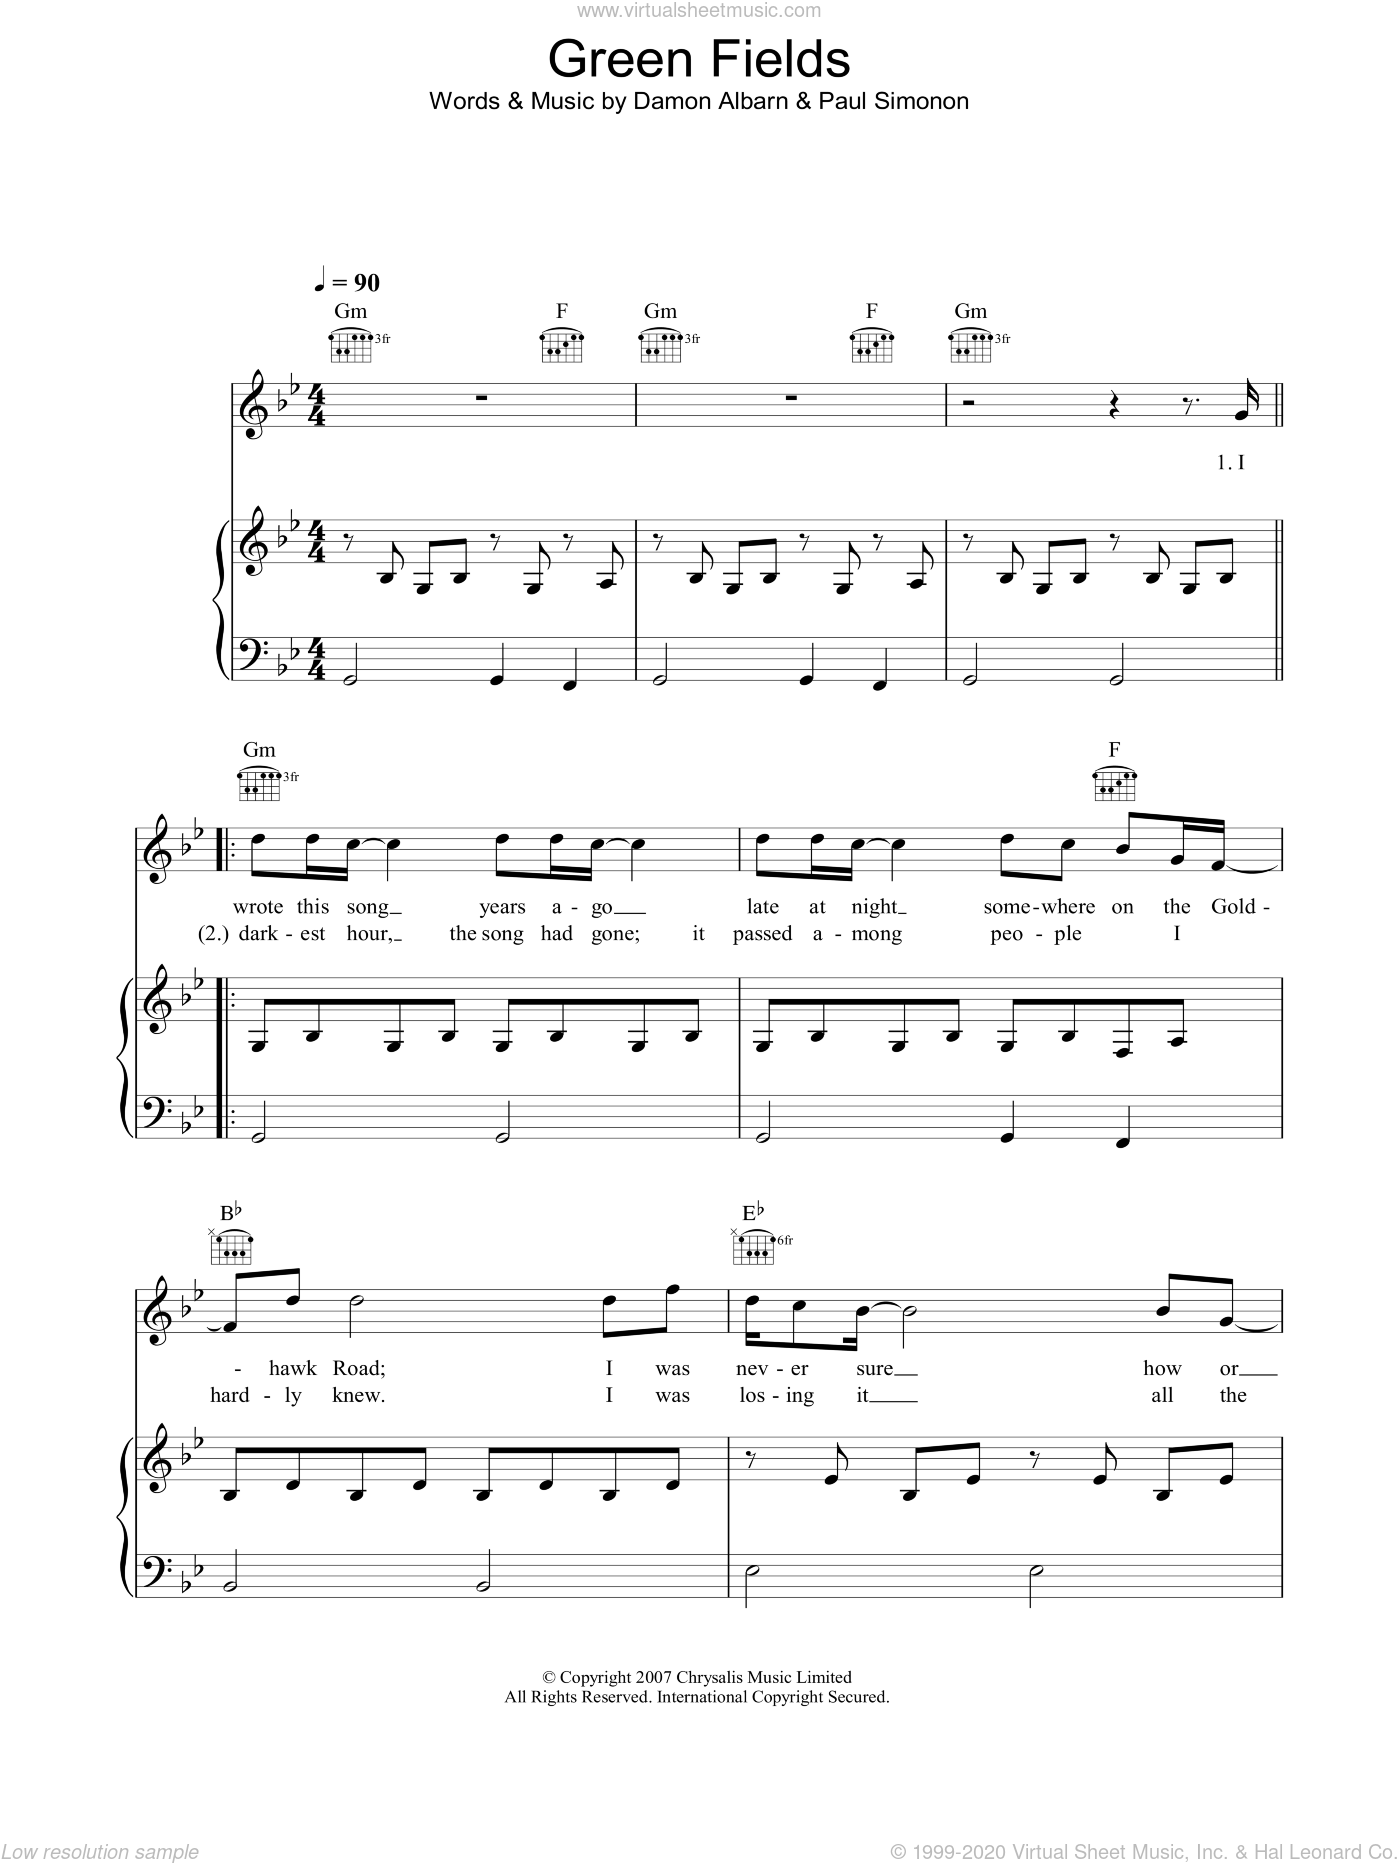 Green Fields sheet music for voice, piano or guitar by Damon Albarn